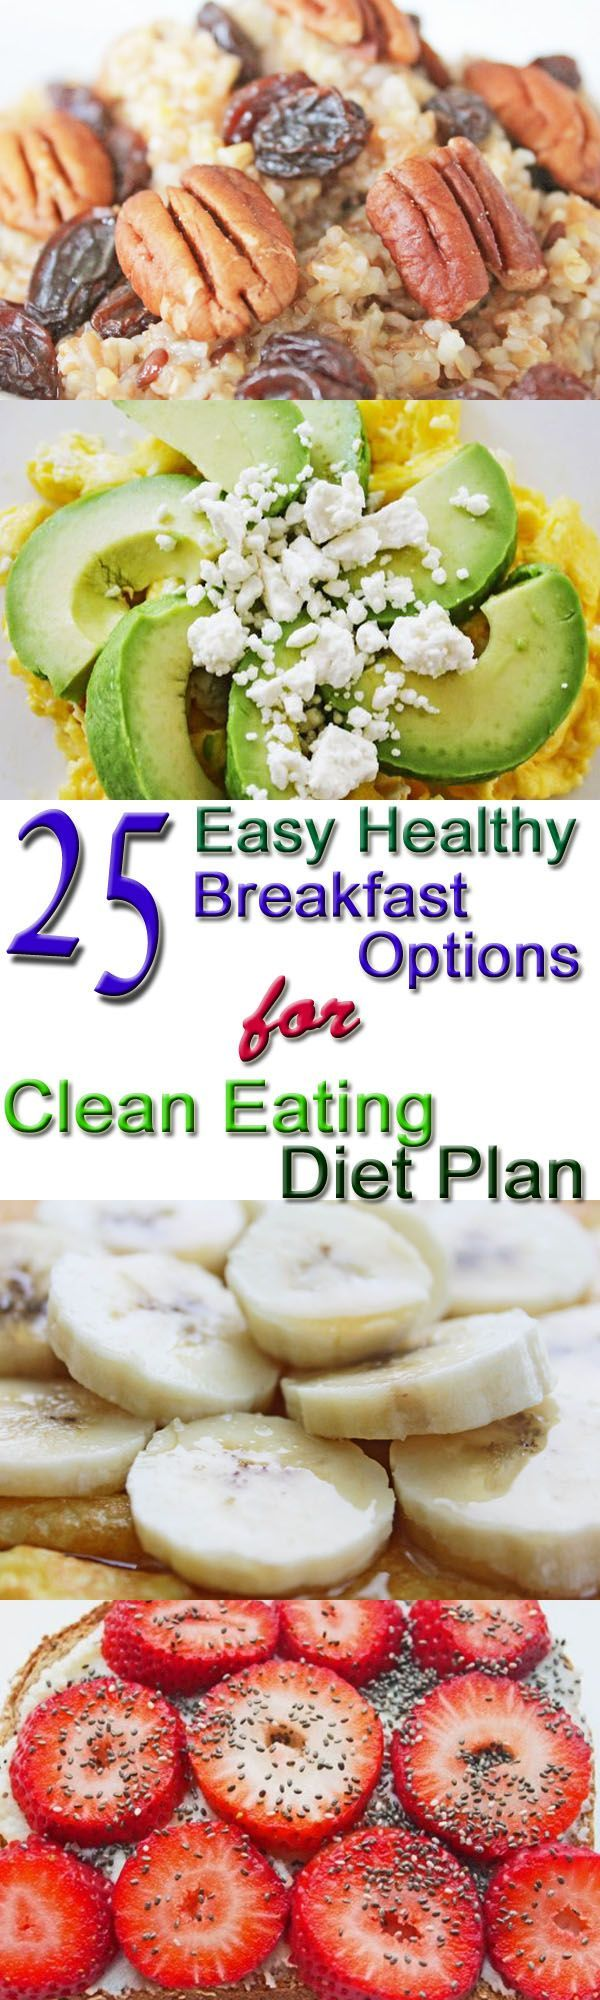 25 Healthy Breakfast Options | Healthy Weight Loss Recipes | Easy Healthy Recipes | Clean Eating Diet